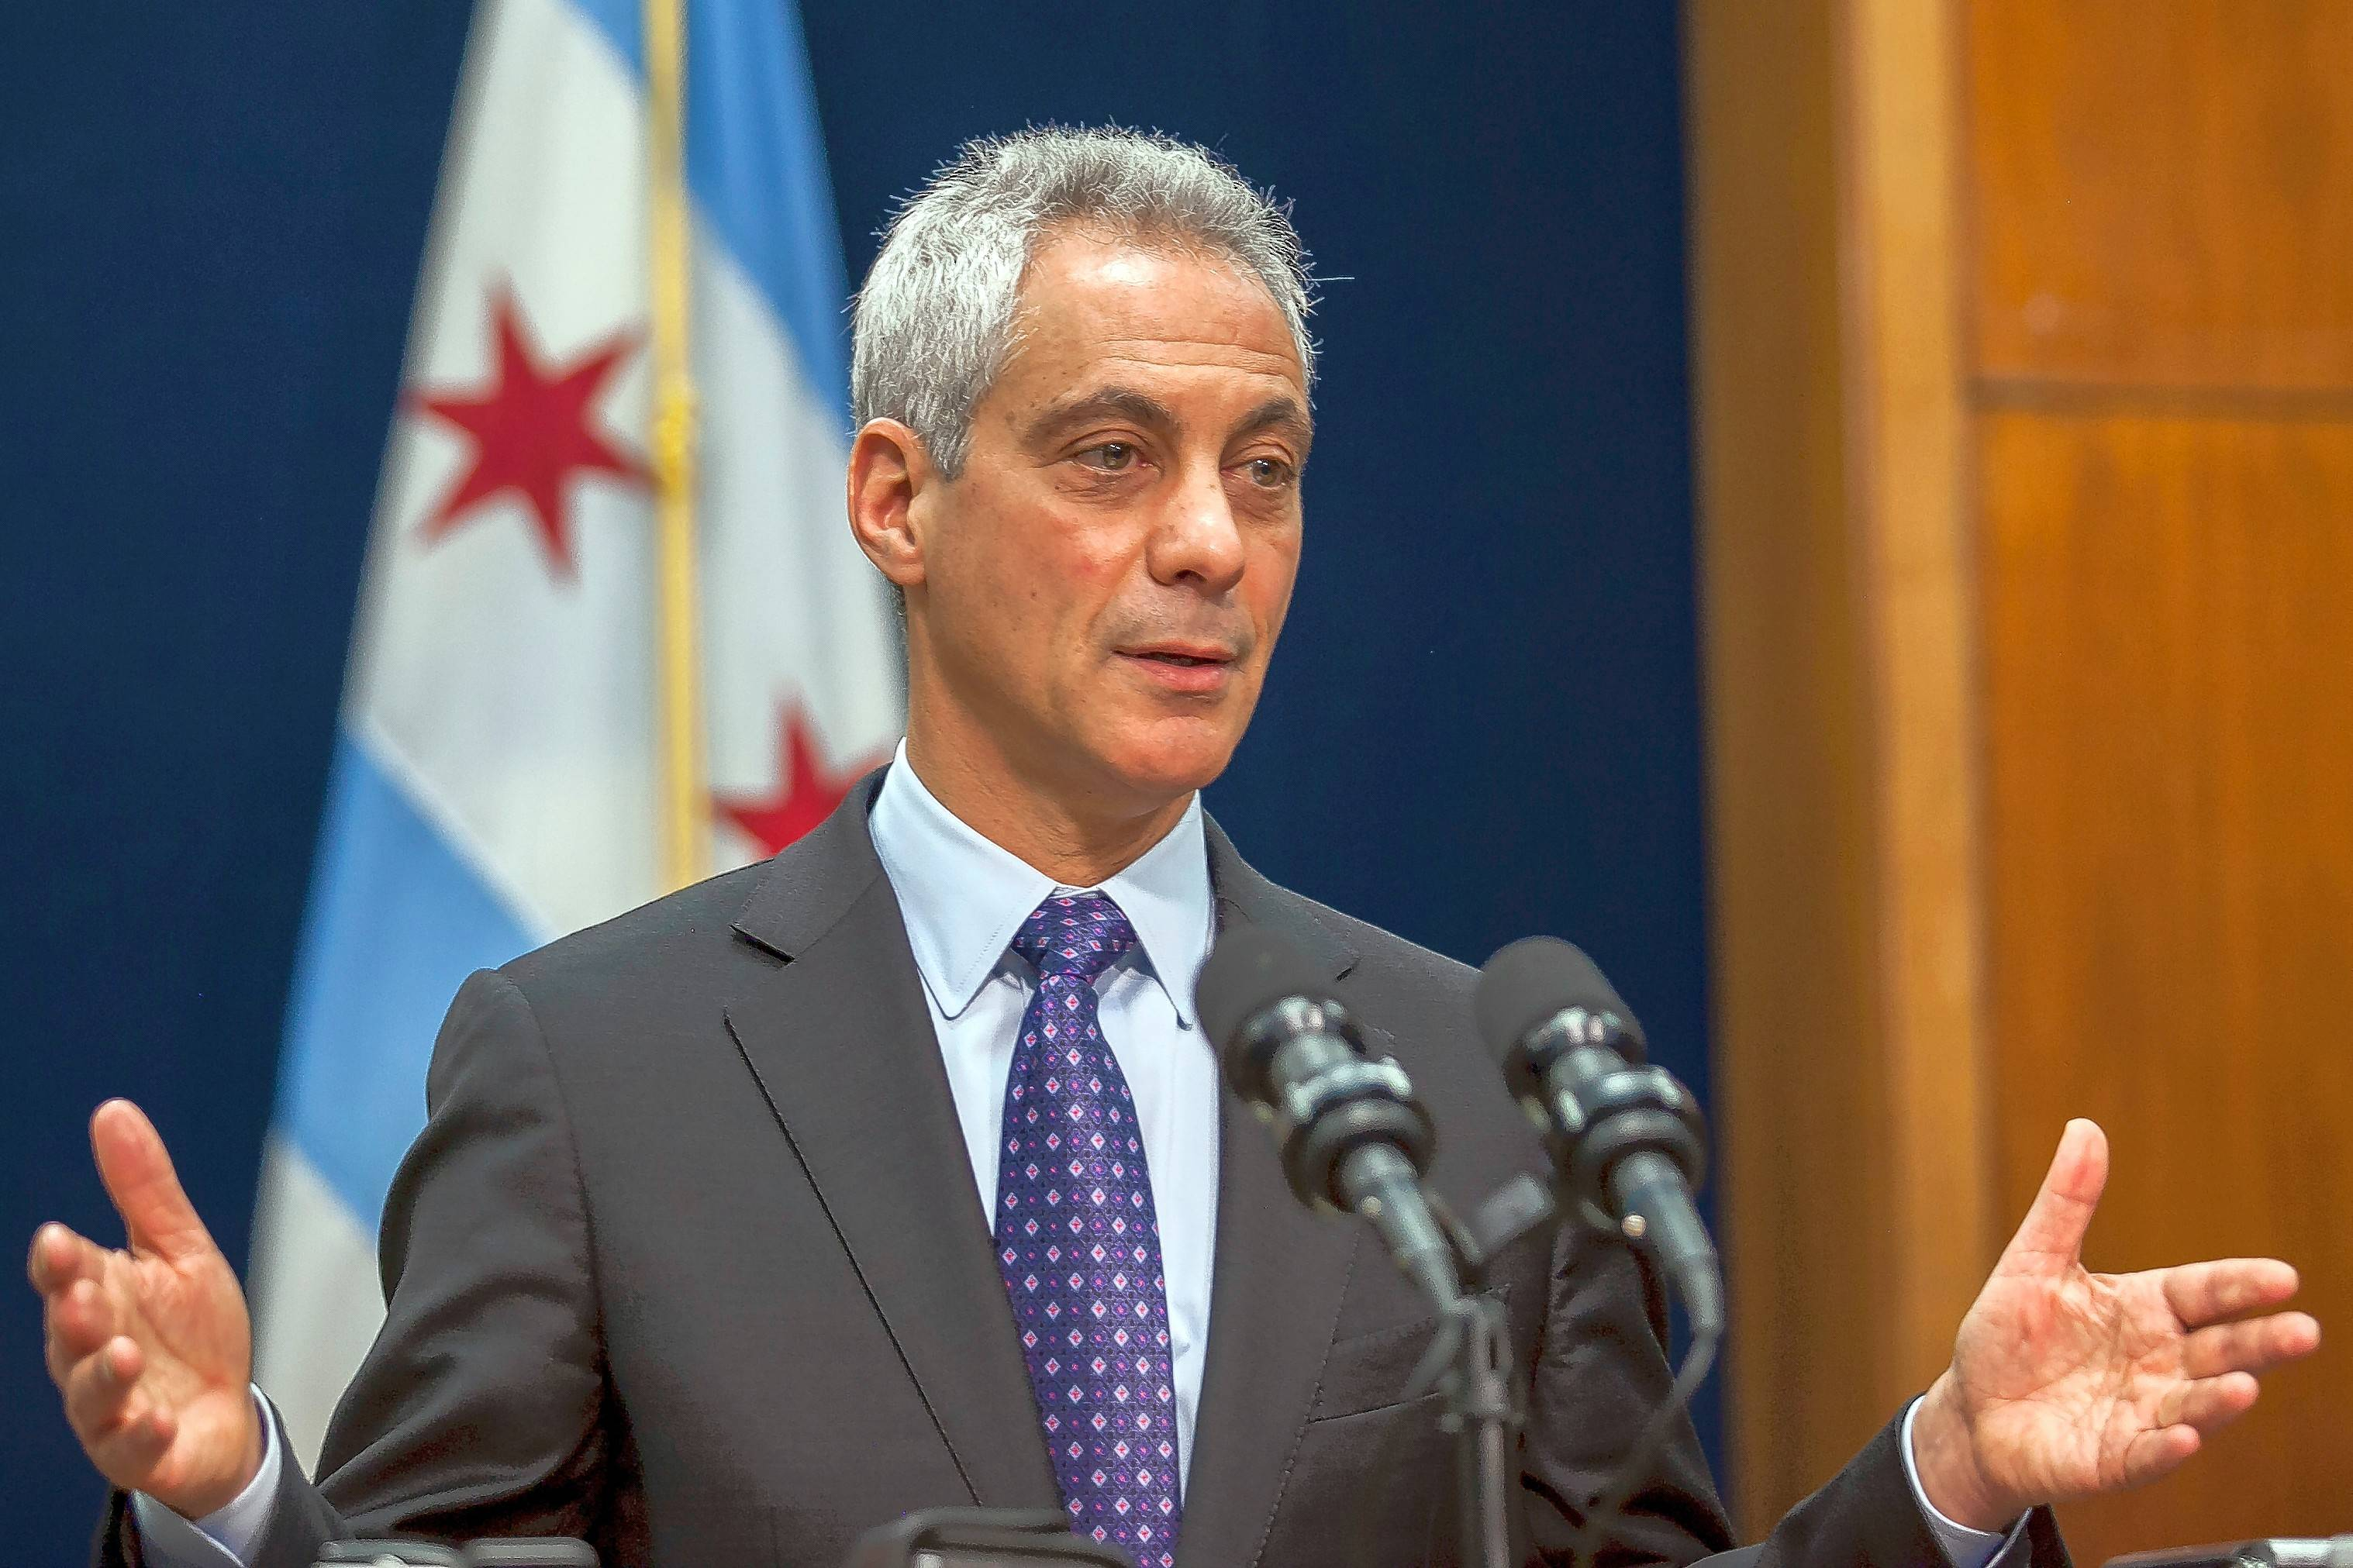 Chicago Mayor Rahm Emanuel speaks at a news conference in Chicago, Tuesday, Dec. 1, 2015, where he announced the firing Chicago Police Superintendent Garry McCarthy and discussed the creation of a newly created task force on police accountability.